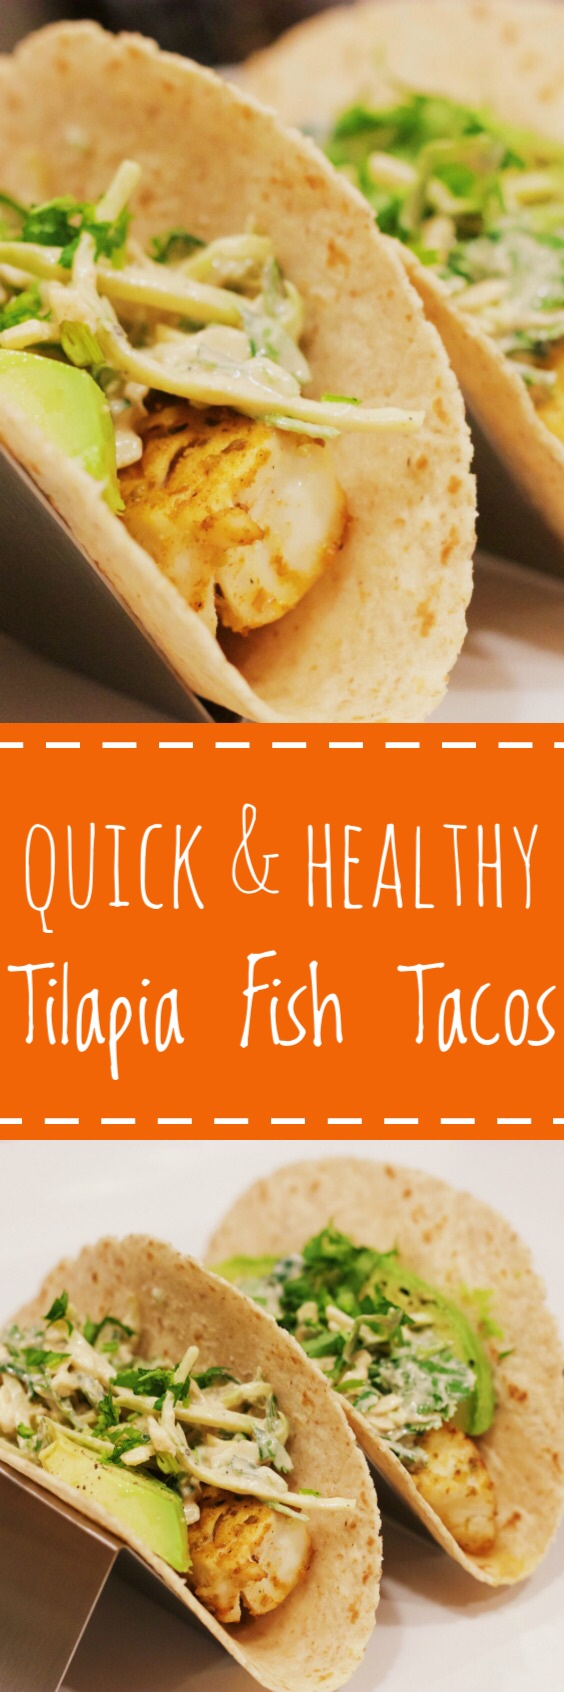 These delicious fish tacos are ready in under 30 minutes and have less than 300 calories!  They are a perfect weeknight meal!